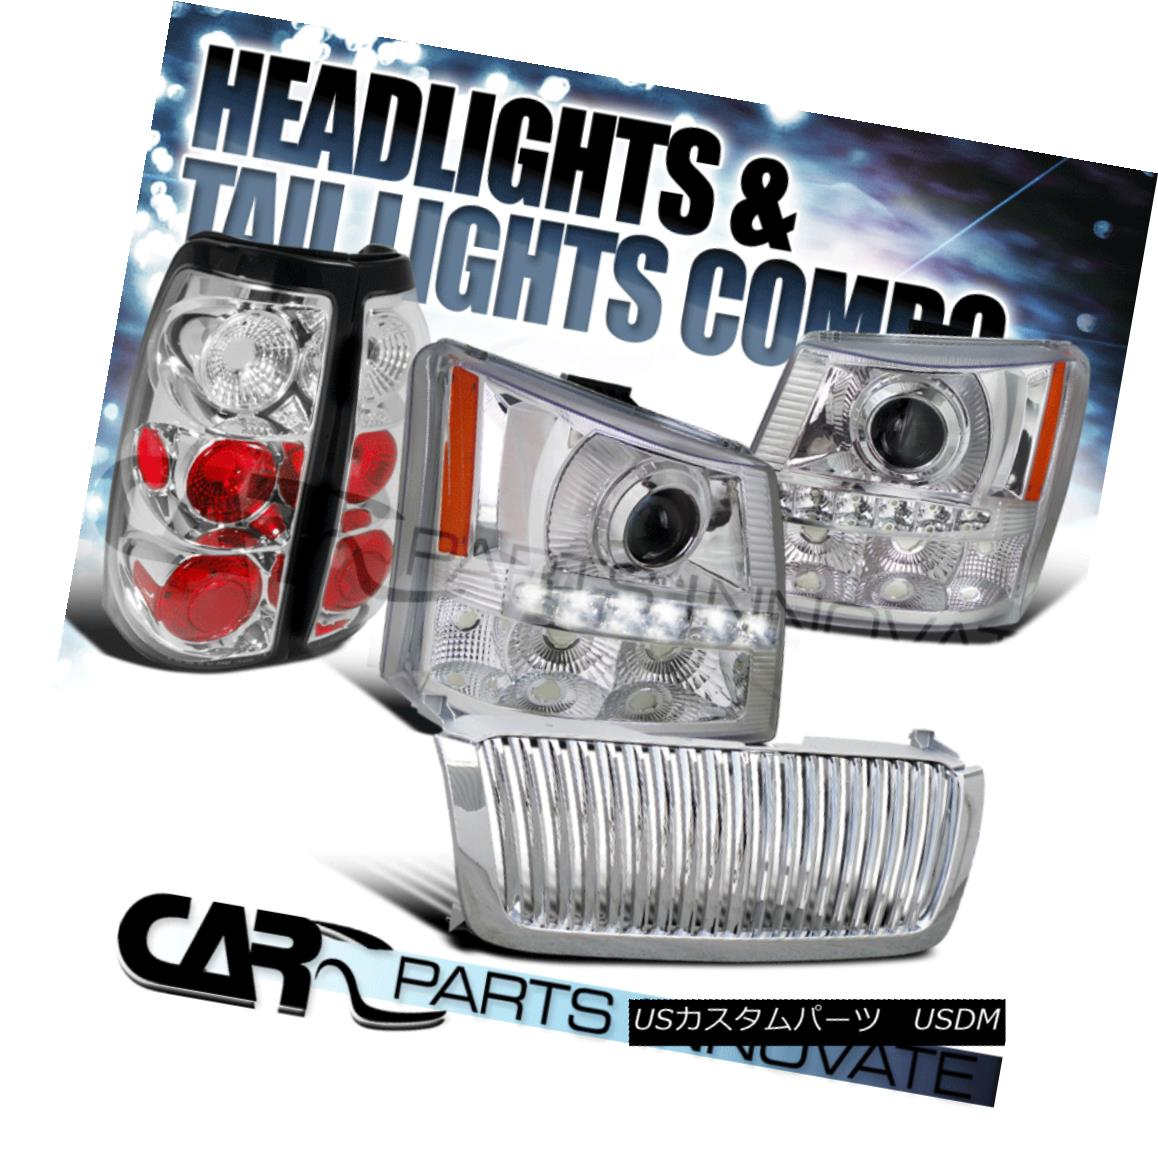 グリル 03-05 Silverado Chrome Projector Head Bumper Light+SMD LED+Grille+Tail Lamp 03-05 Silverado Chromeプロジェクターヘッドバンパーライト+ SMD LED +グリル+タイ lランプ